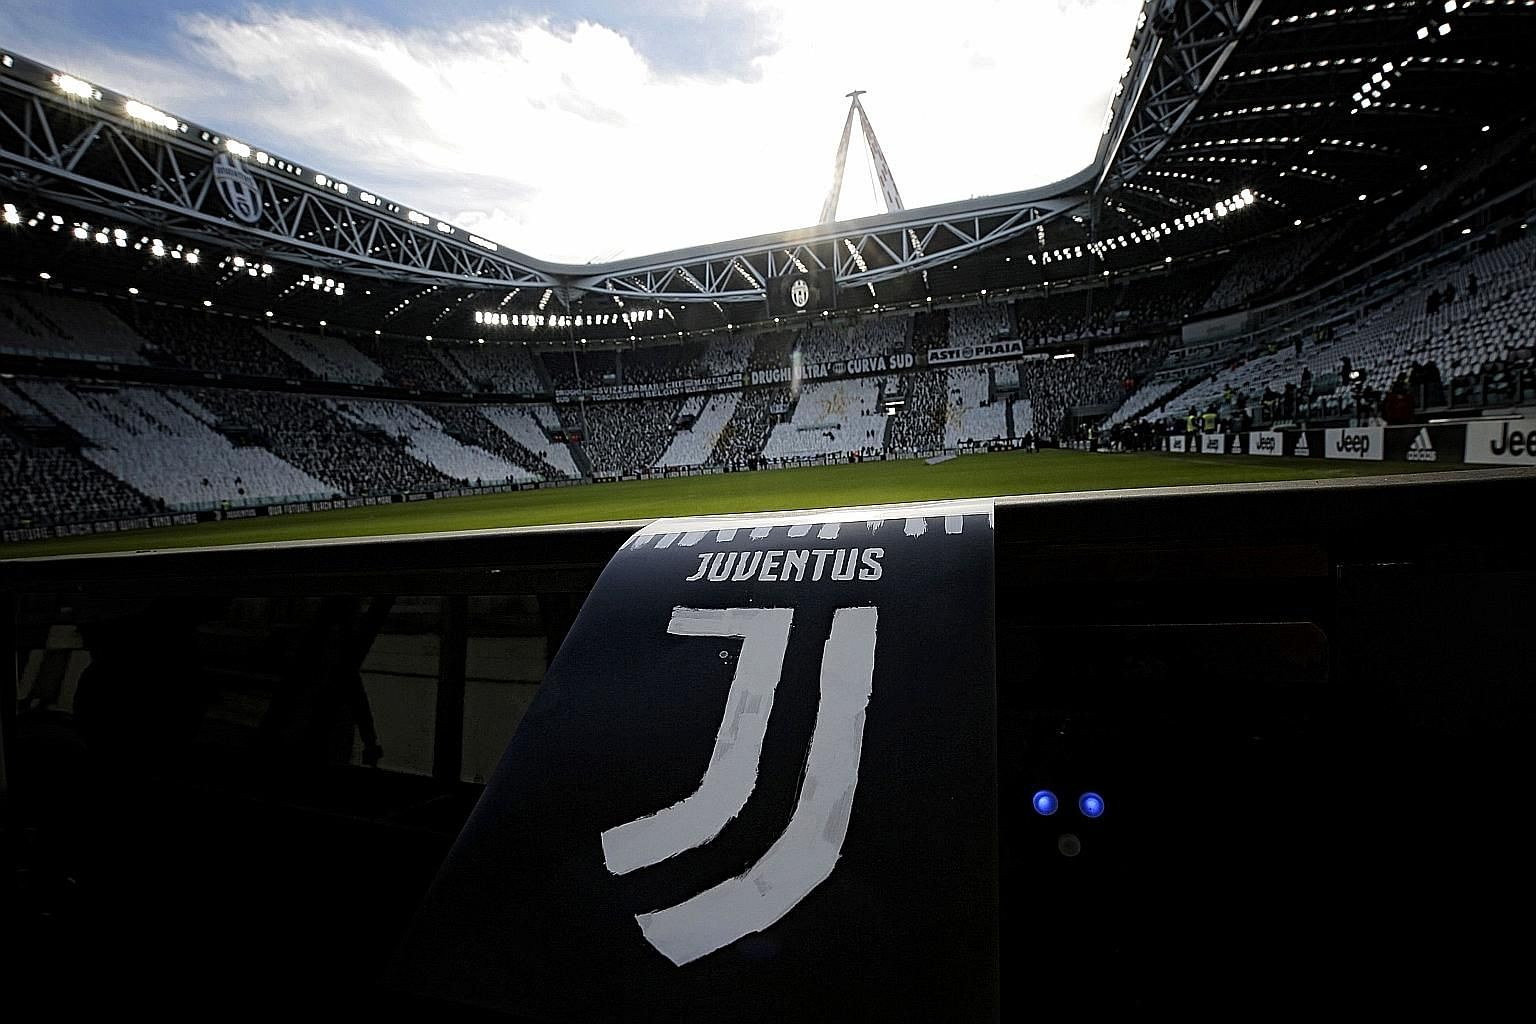 The Juventus Stadium in Turin can start hosting Serie A matches again if the league resumes on June 13 as clubs have suggested. But no date has been set for the season to restart.